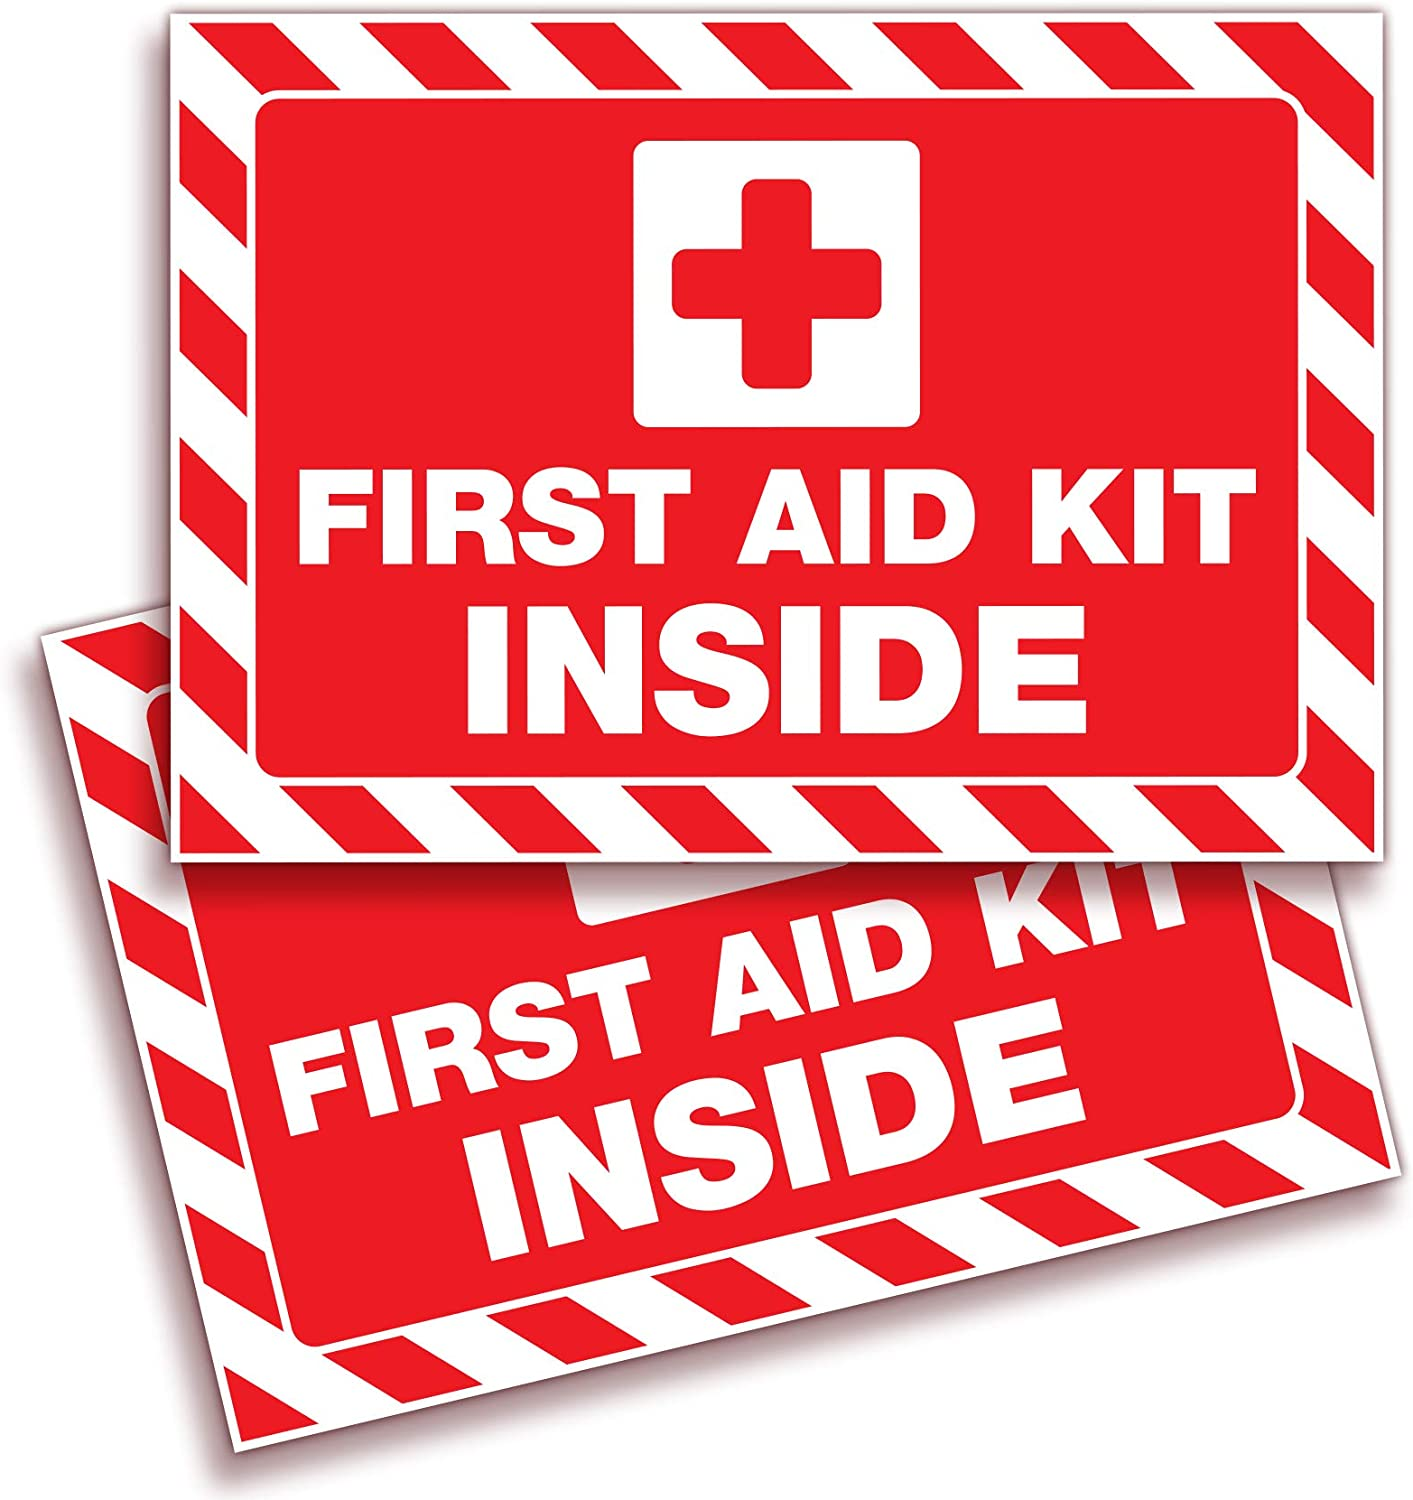 First Aid Kit Inside Signs Stickers for Home, Schools & Business – 2 Pack 10x7 Inch – Premium Self-Adhesive Vinyl, Laminated UV, Weather, Scratch, Water and Fade Resistance, Indoor & Outdoor